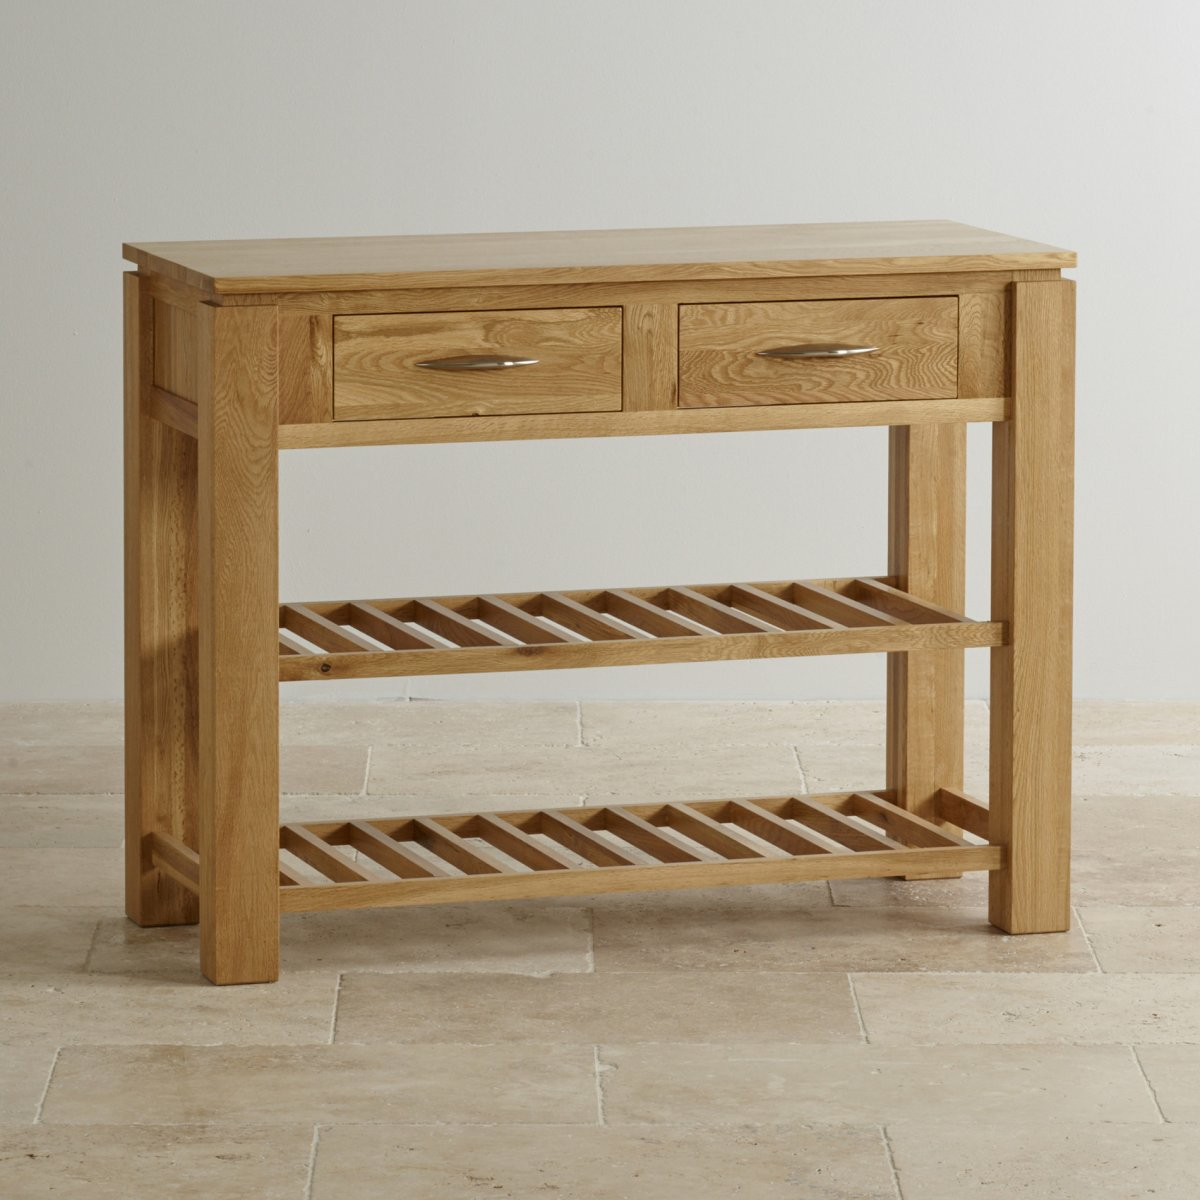 Galway natural solid oak storage console table for Solid oak furniture